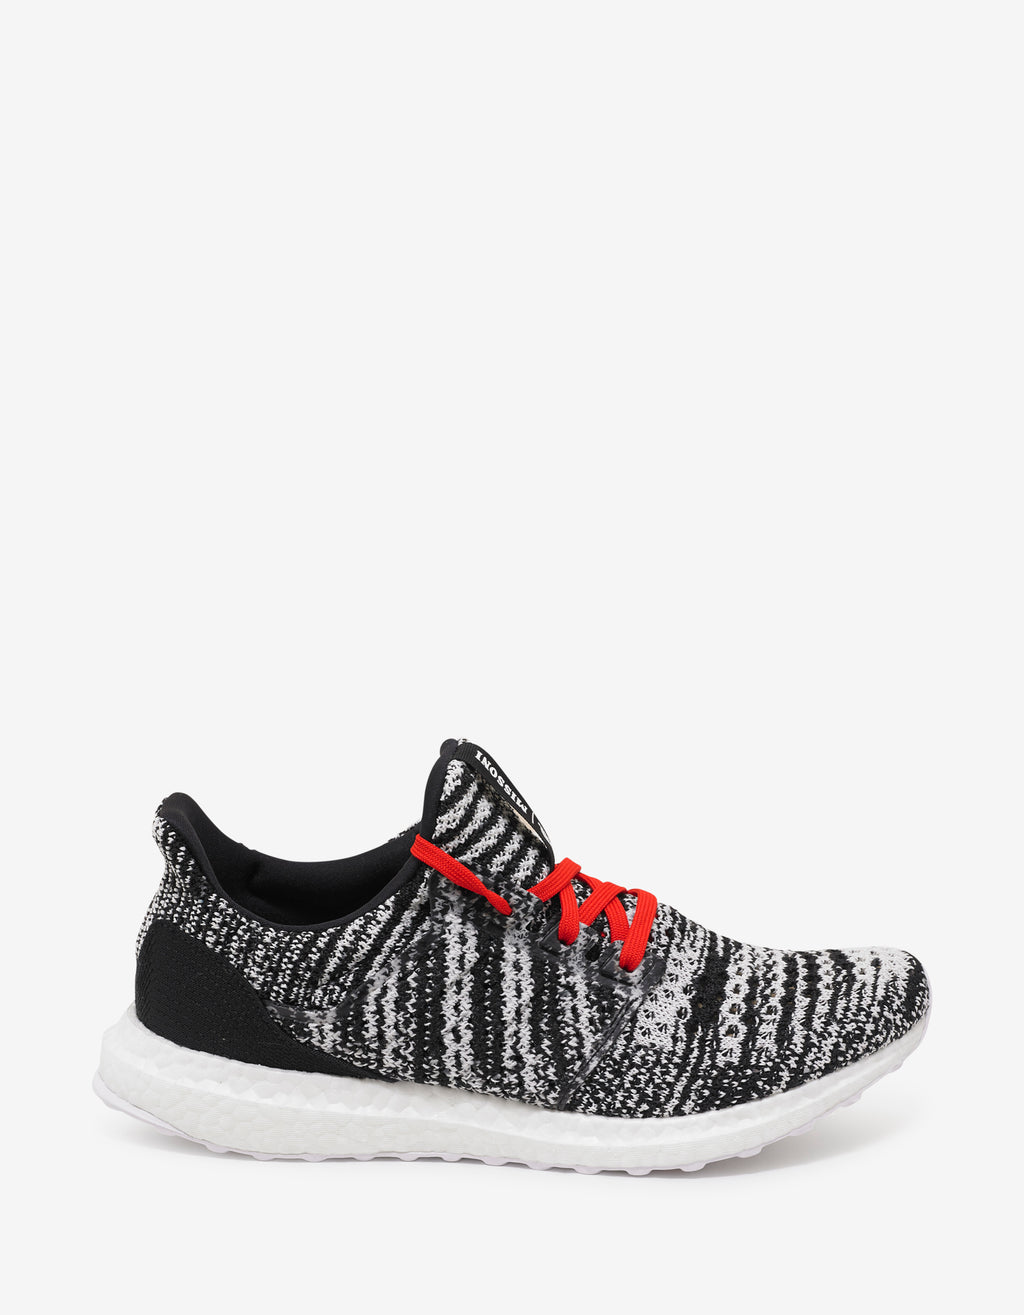 Ultraboost Black Primeknit Trainers